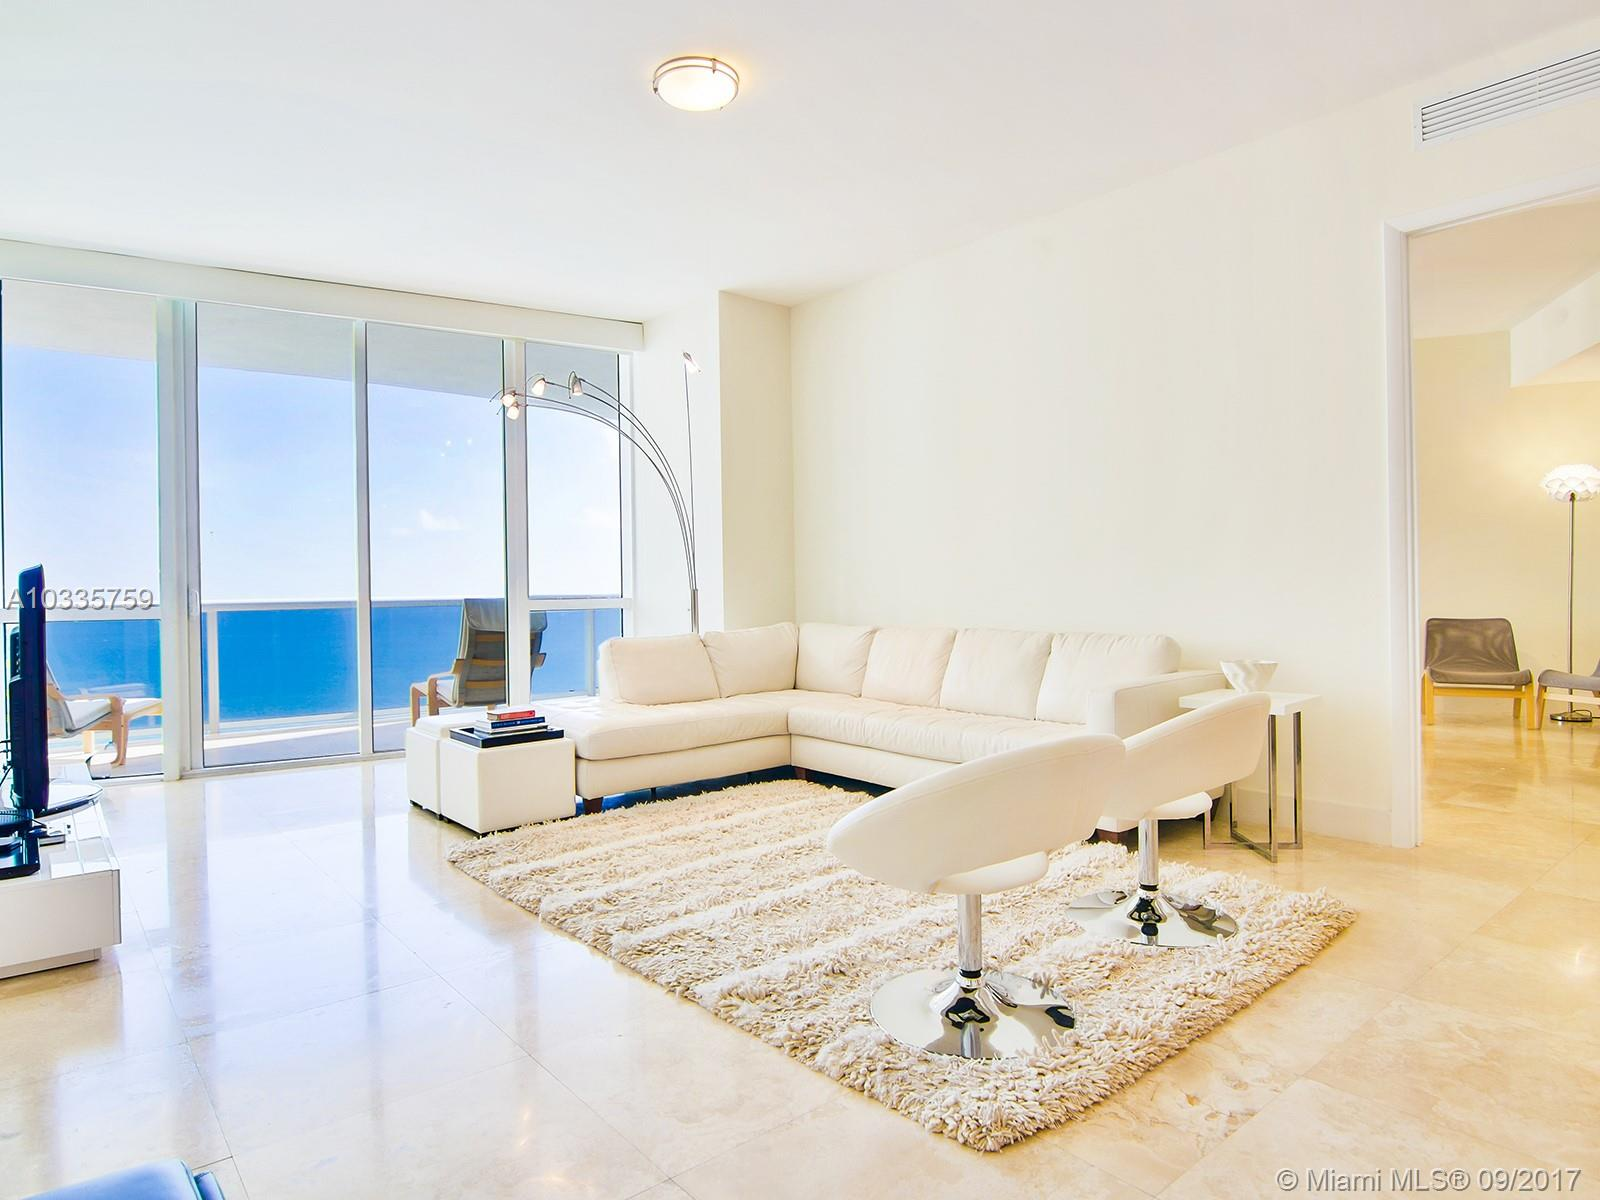 Beautifully designed and finished unit with direct Ocean views from every room. Being offered turn-key for a buyer who appreciates a carefully furnished unit and the convenience of moving in quickly and stress free. With warm and modern design, this spacious 2 suites residence is ideal for entertaining while enjoying breathtaking views of the ocean. Full service five star building with gym and spa services as well as beach club and restaurant service. It is a true Sunrise Mansion in the sky!